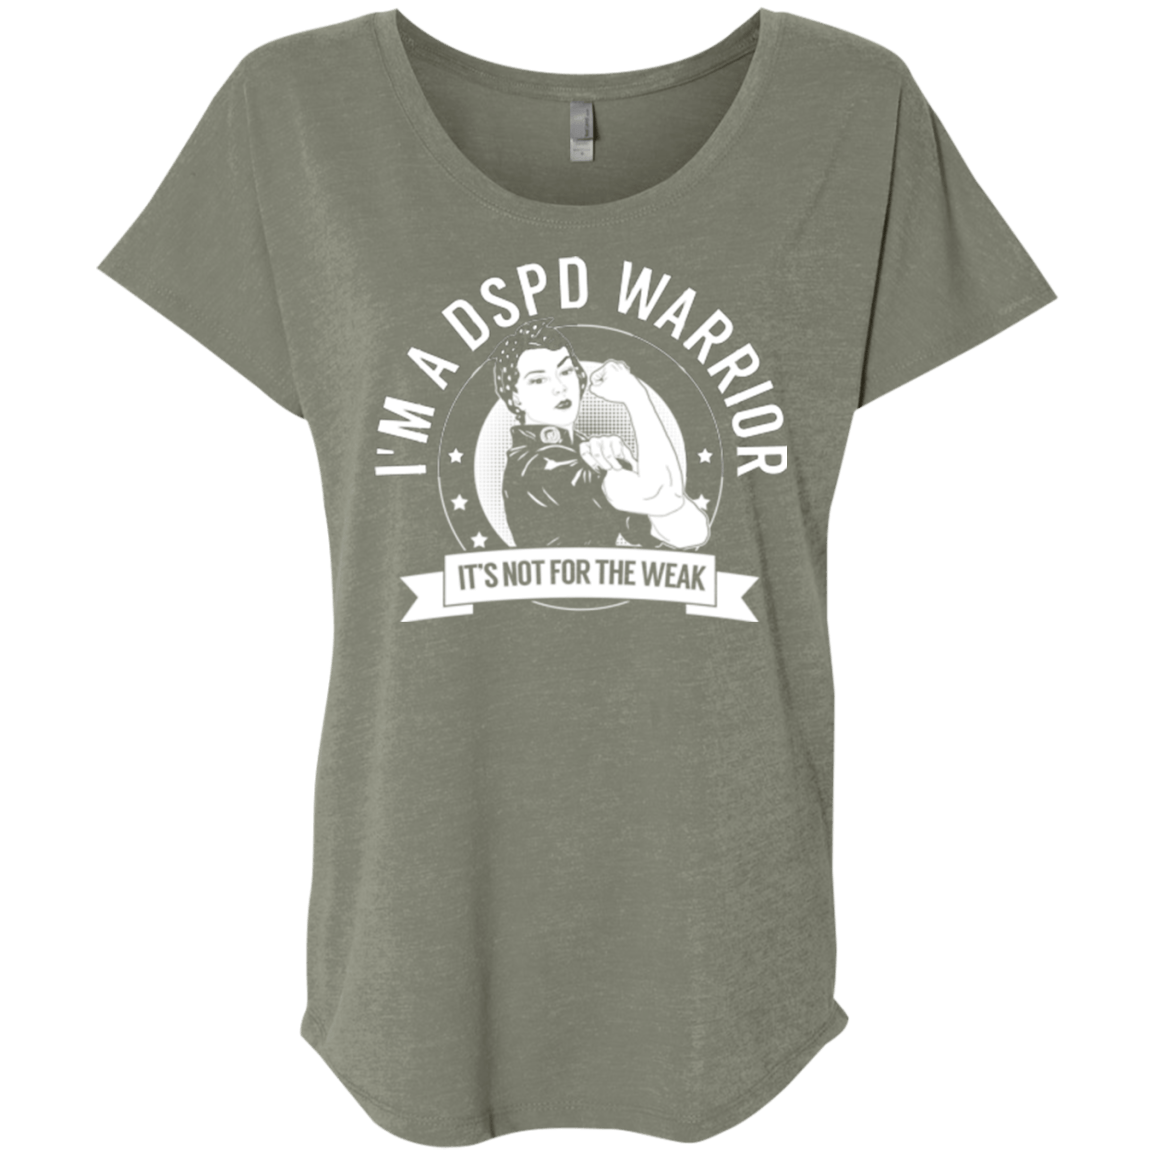 Delayed Sleep Phase Disorder - DSPD Warrior Not For The Weak Dolman Sleeve - The Unchargeables